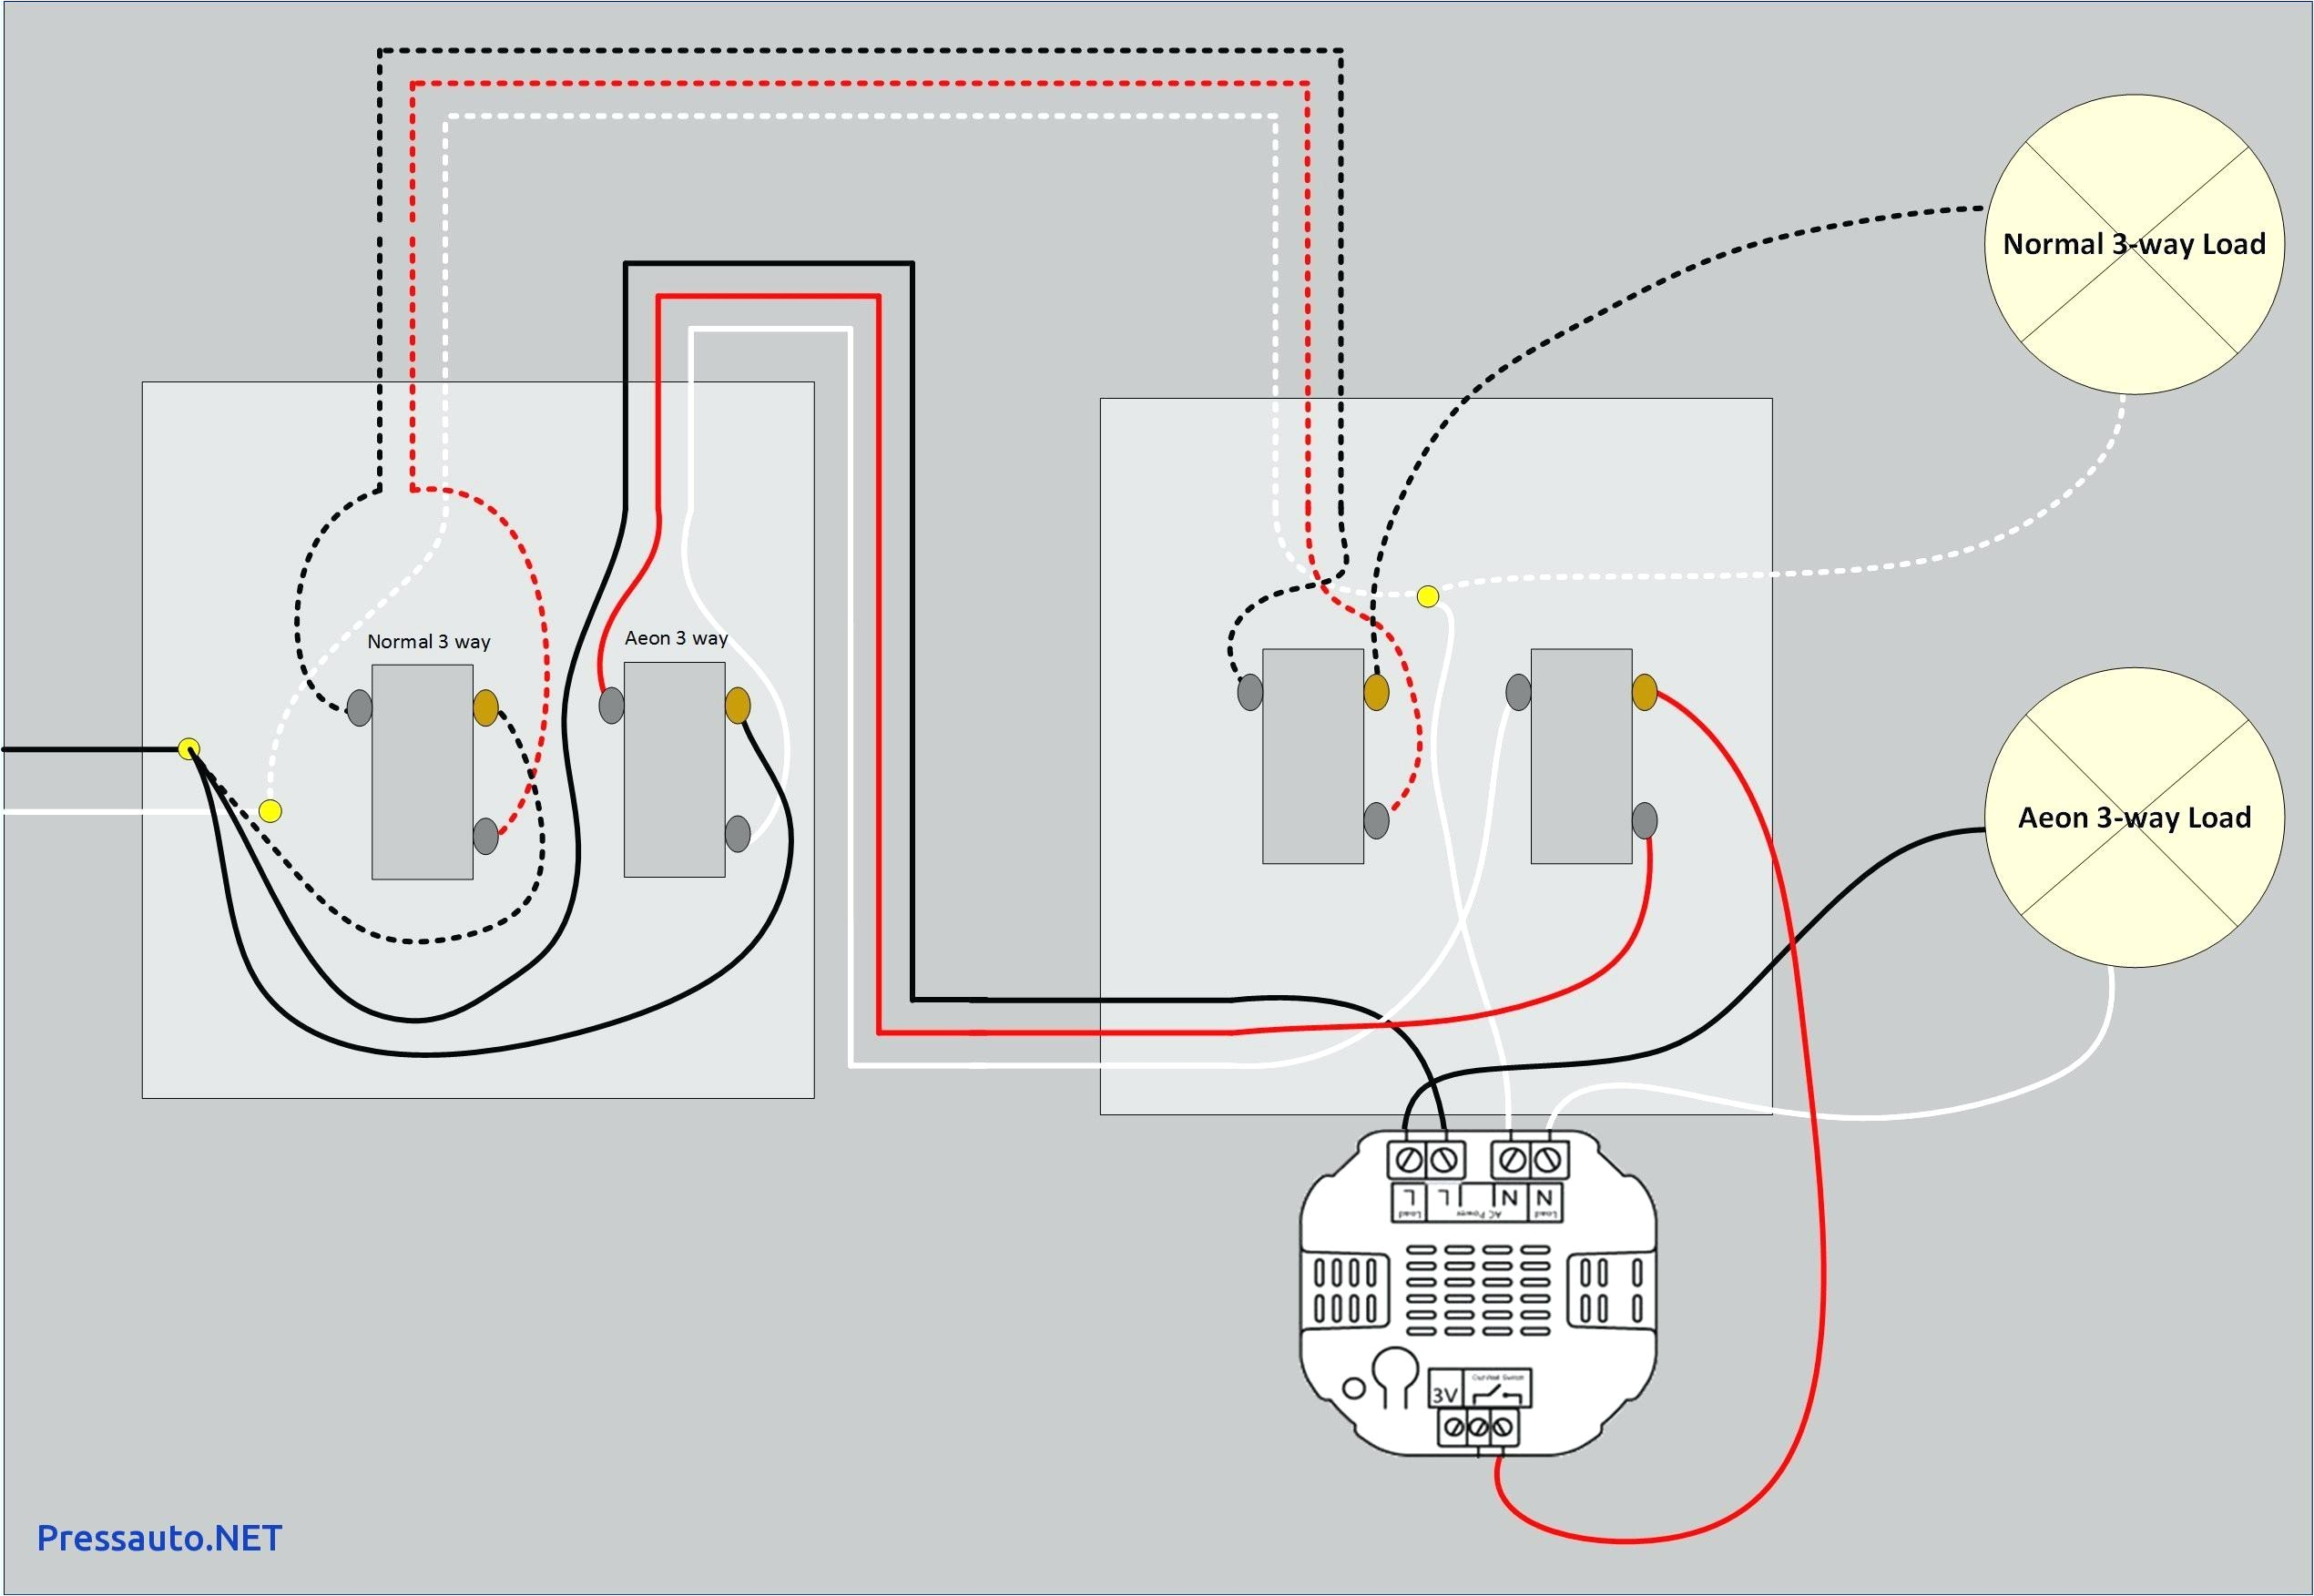 a double schematic wiring wiring diagram toolboxa double schematic wiring schematic diagram data a double schematic